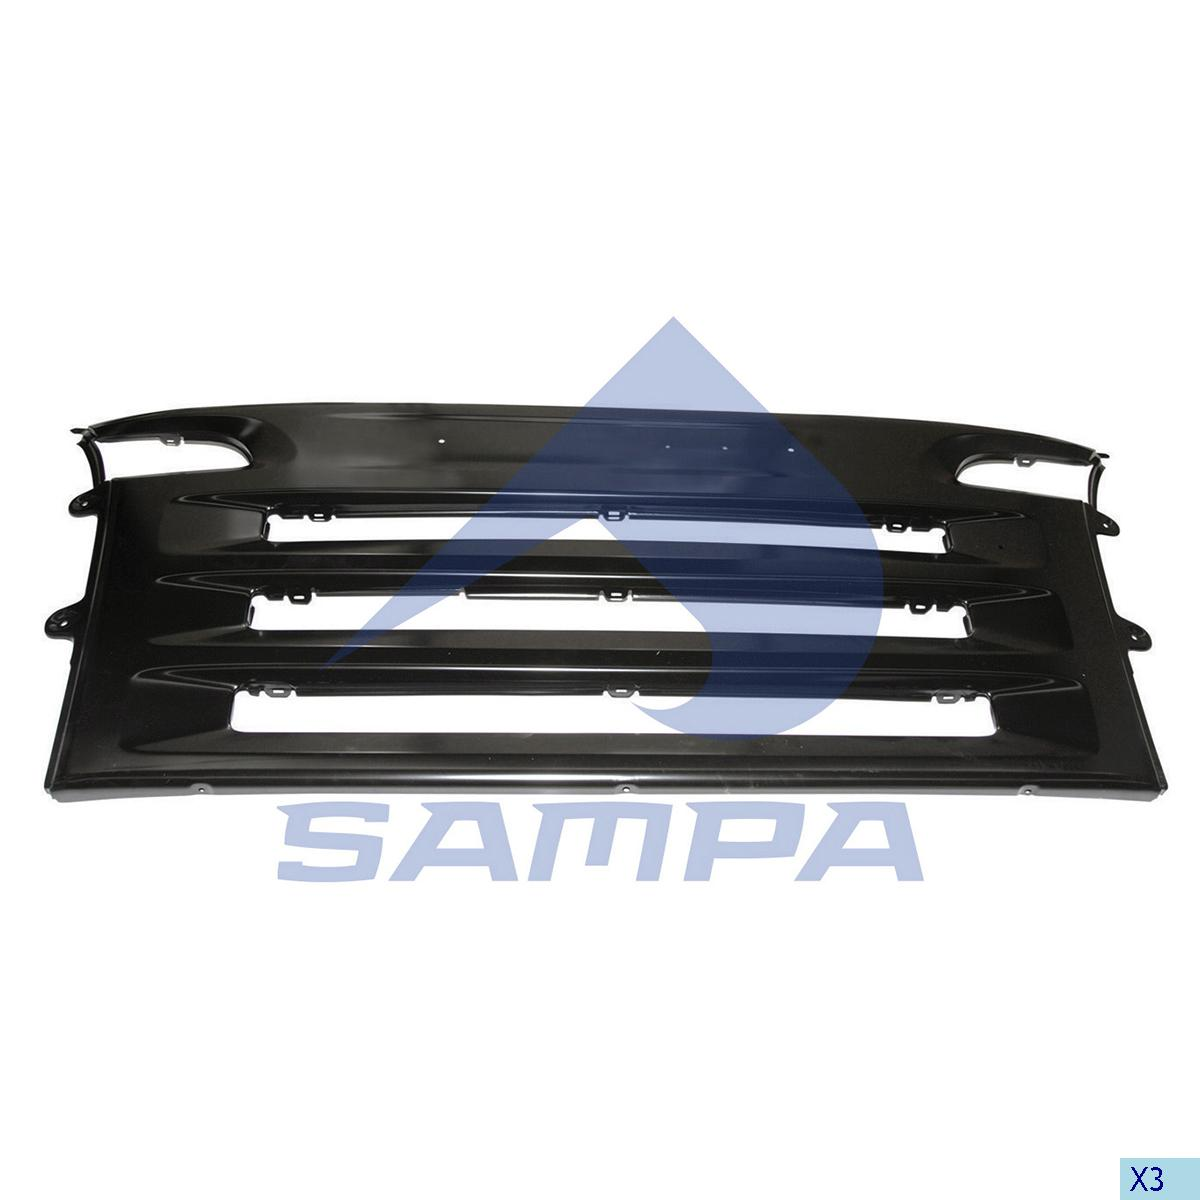 Front Panel, Scania, Cab